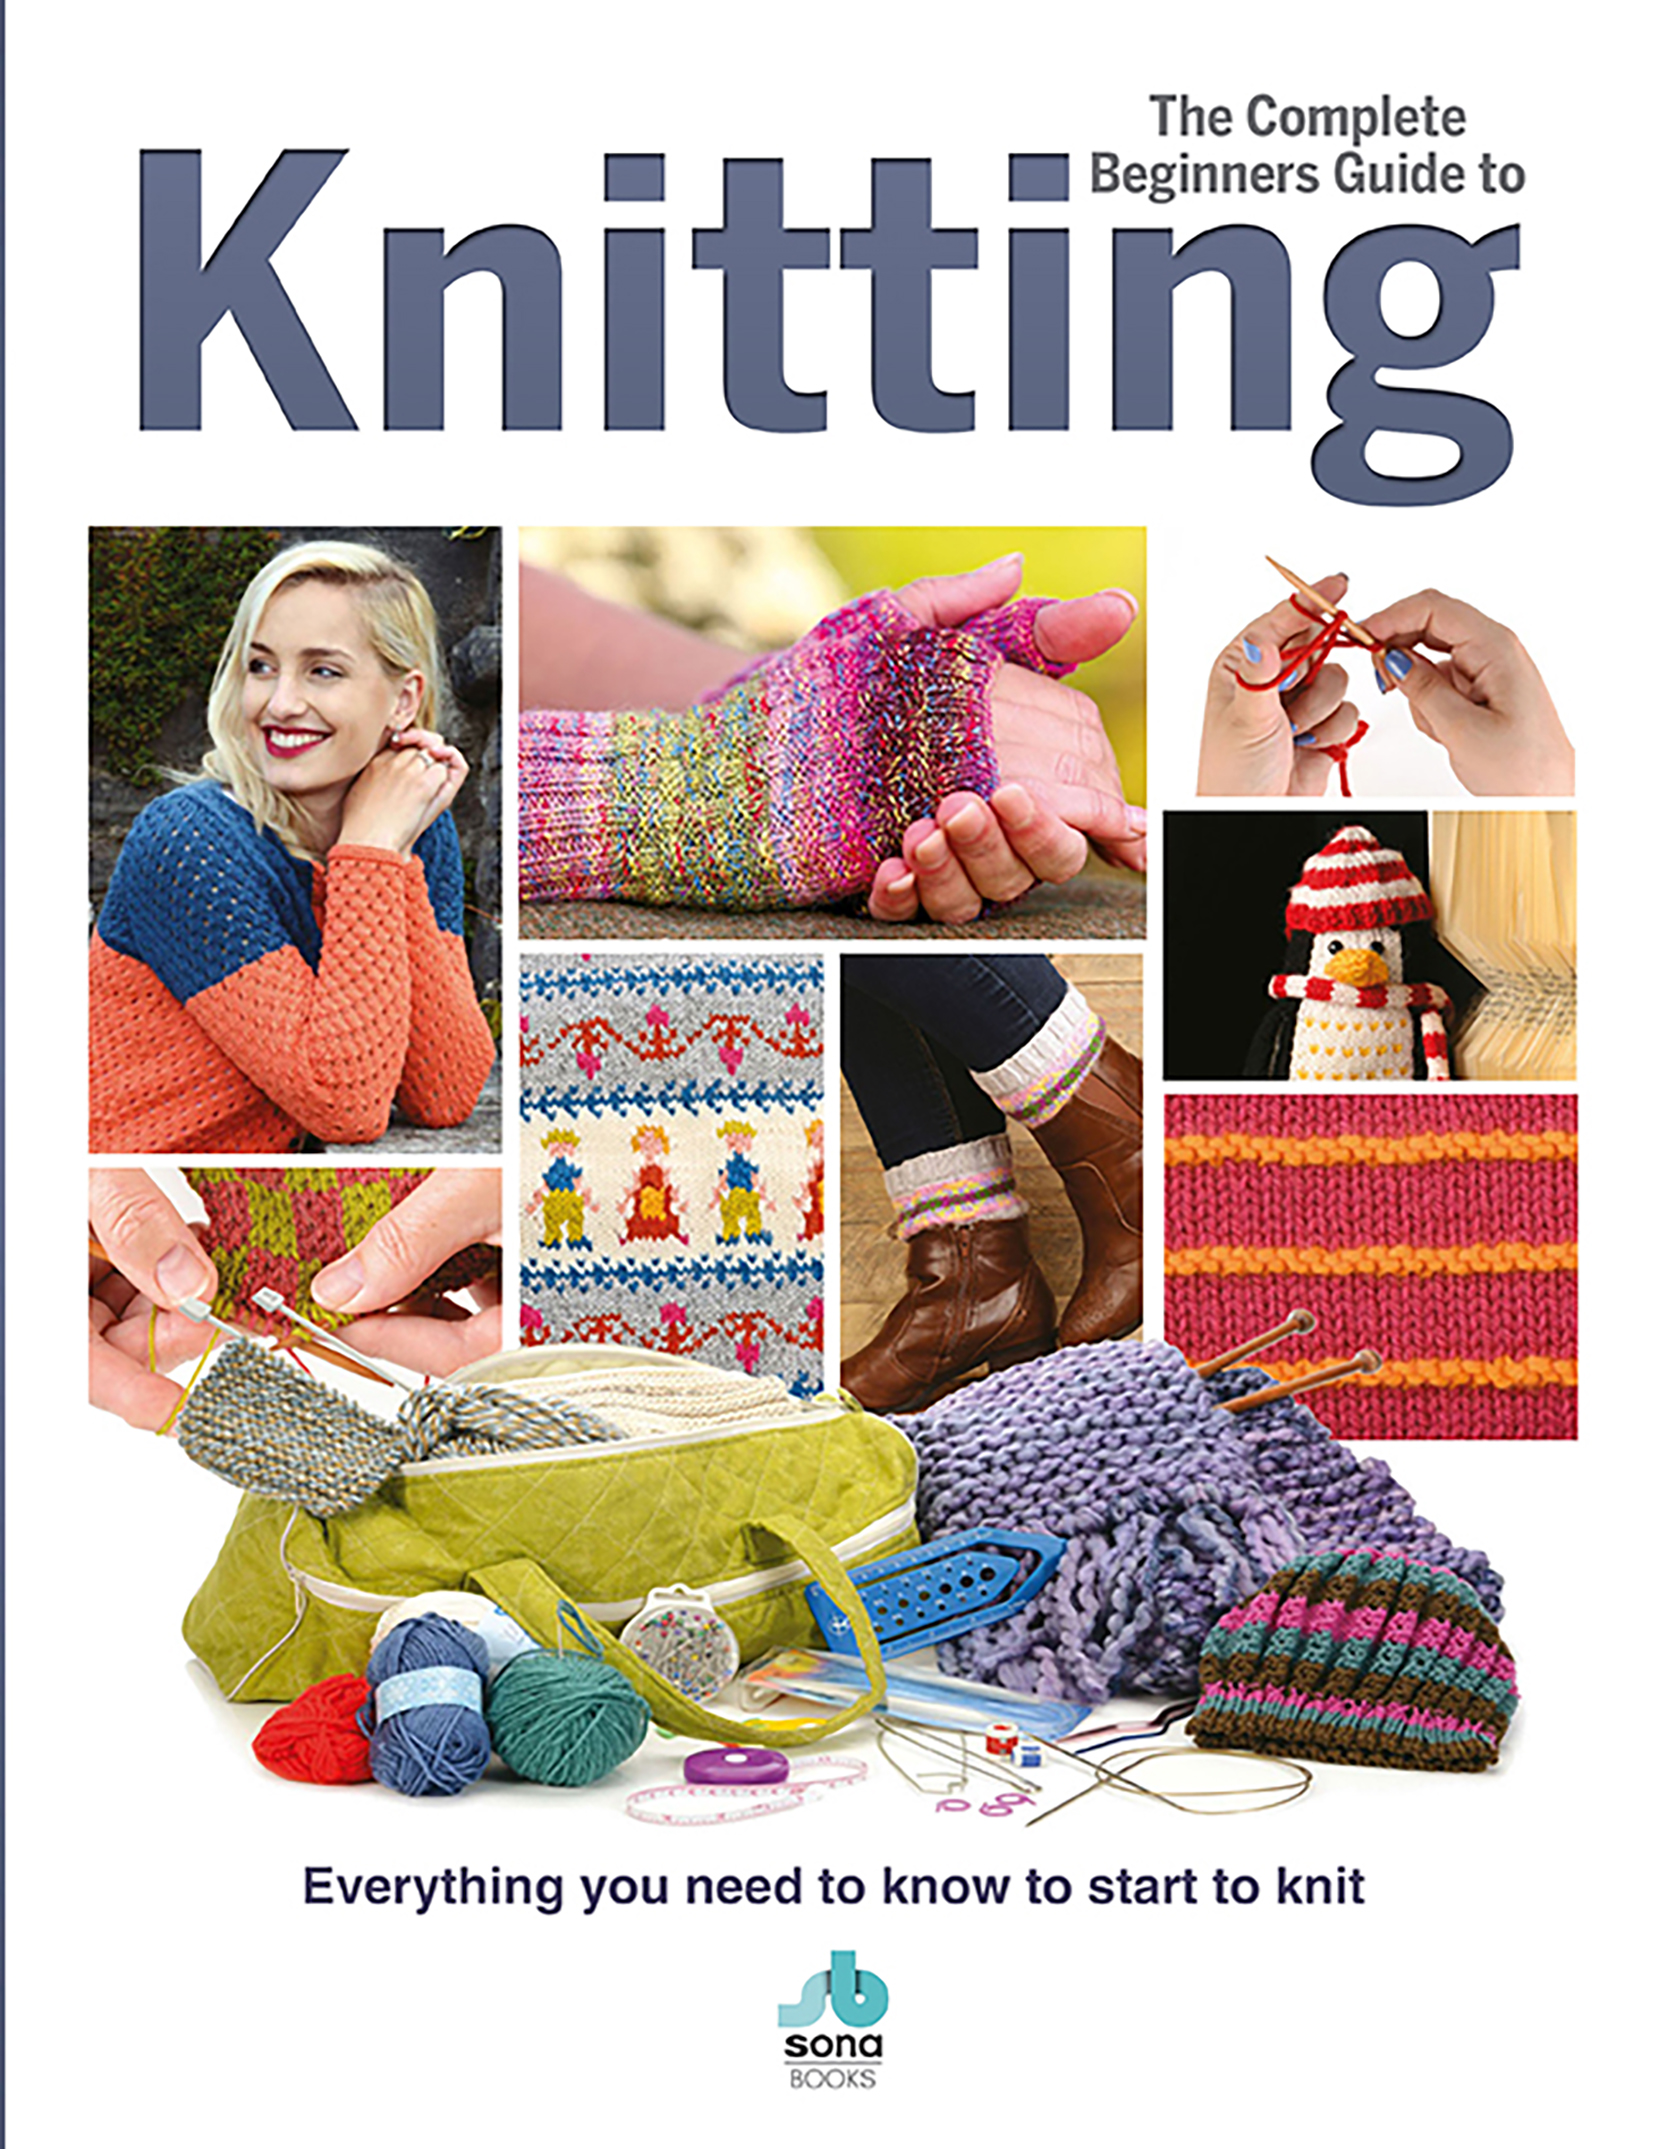 Complete Guide to Knitting